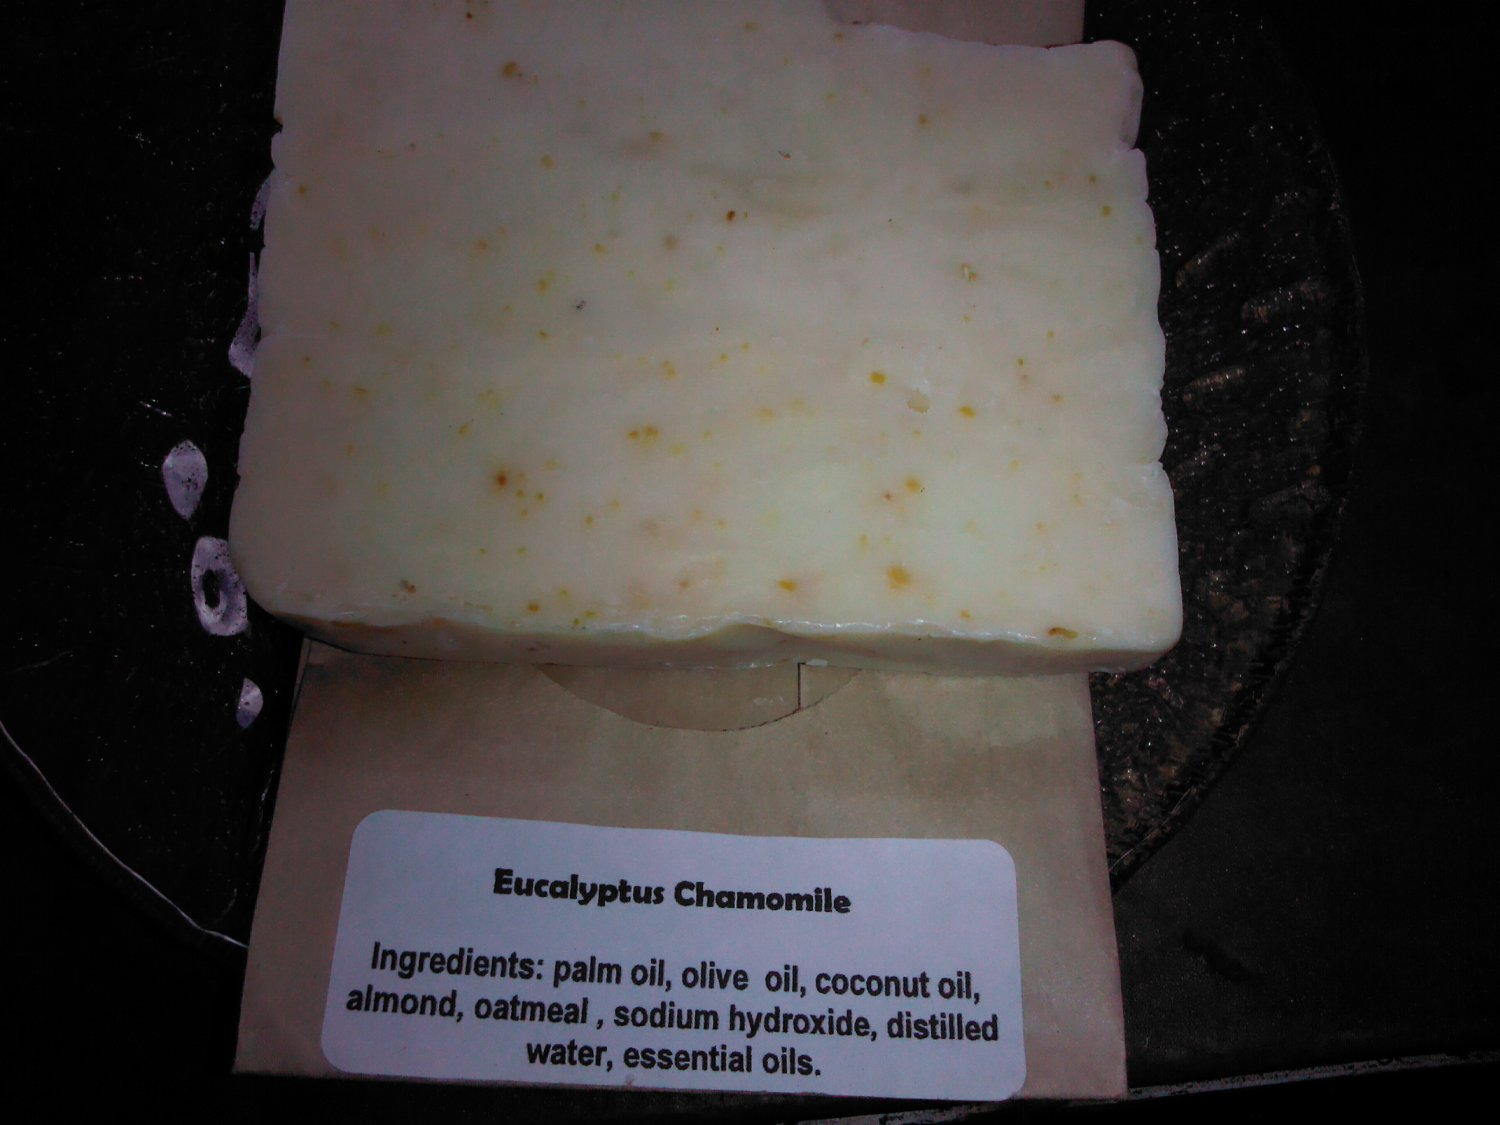 HANDMADE EUCALYPTUS CHAMOMILE  SOAP 2 for $6.75